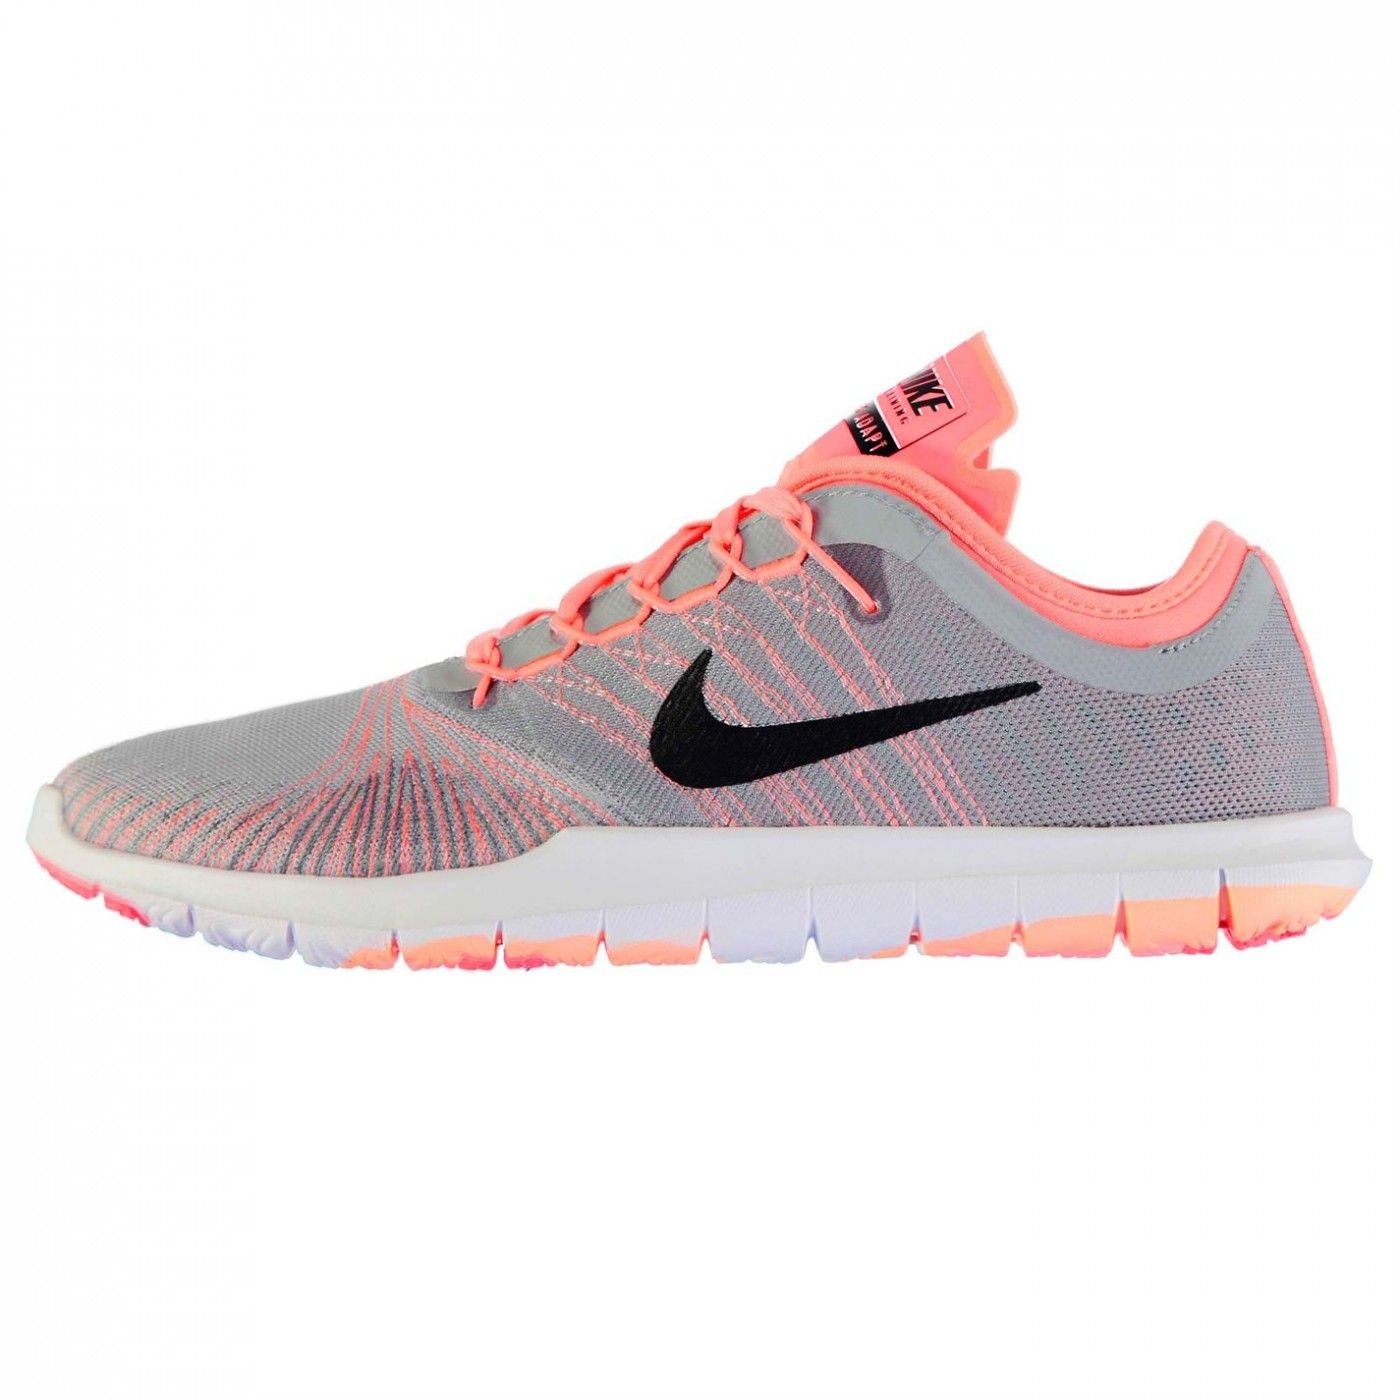 Nike Dual Fusion Hit Fade Ladies Training Shoes | Nike dual fusion,  Trainers and Sportswear